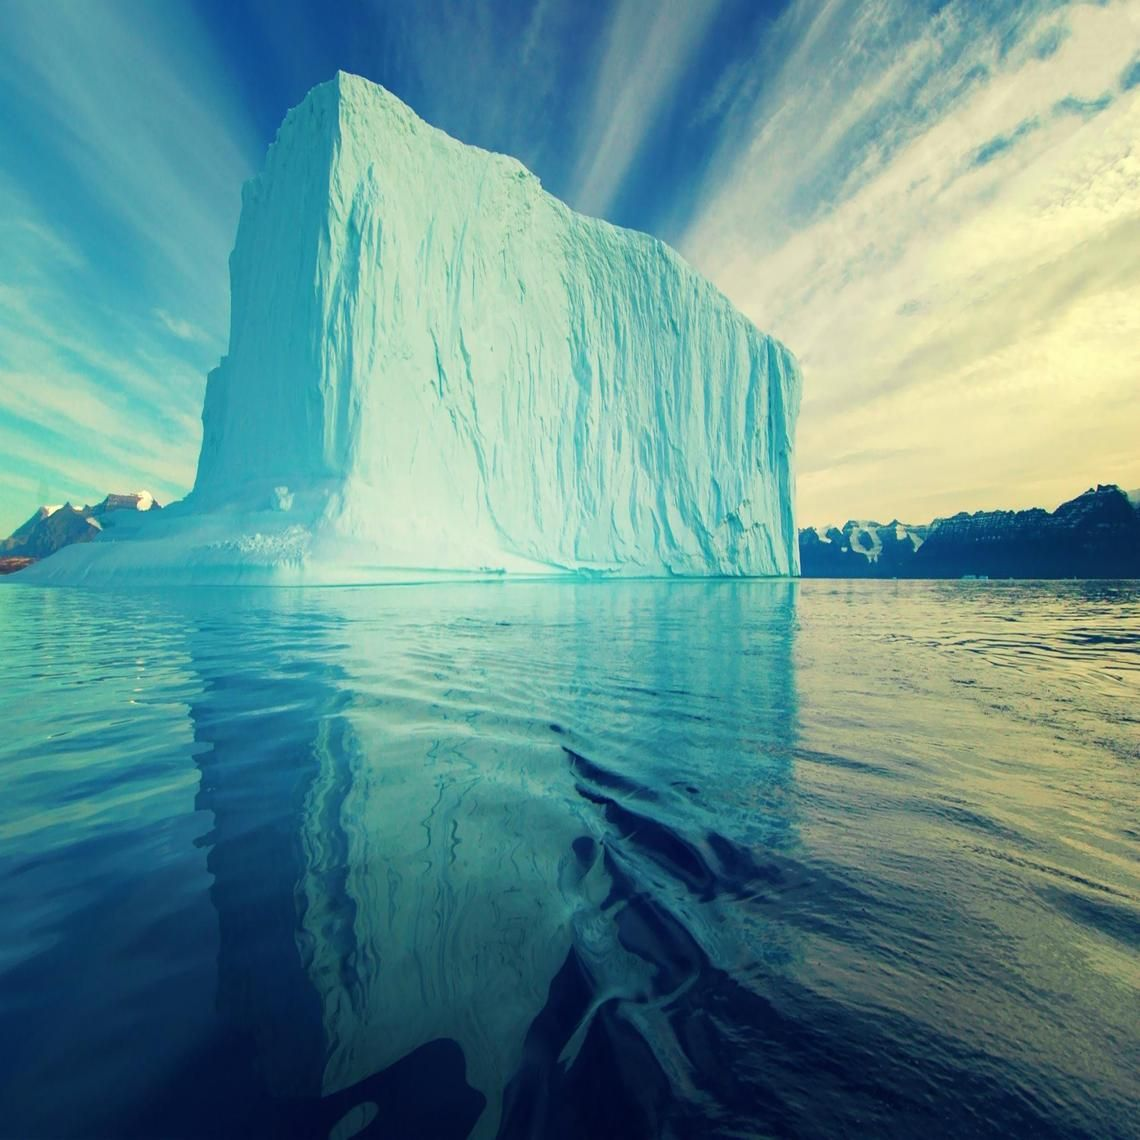 Ice Berg from Artic